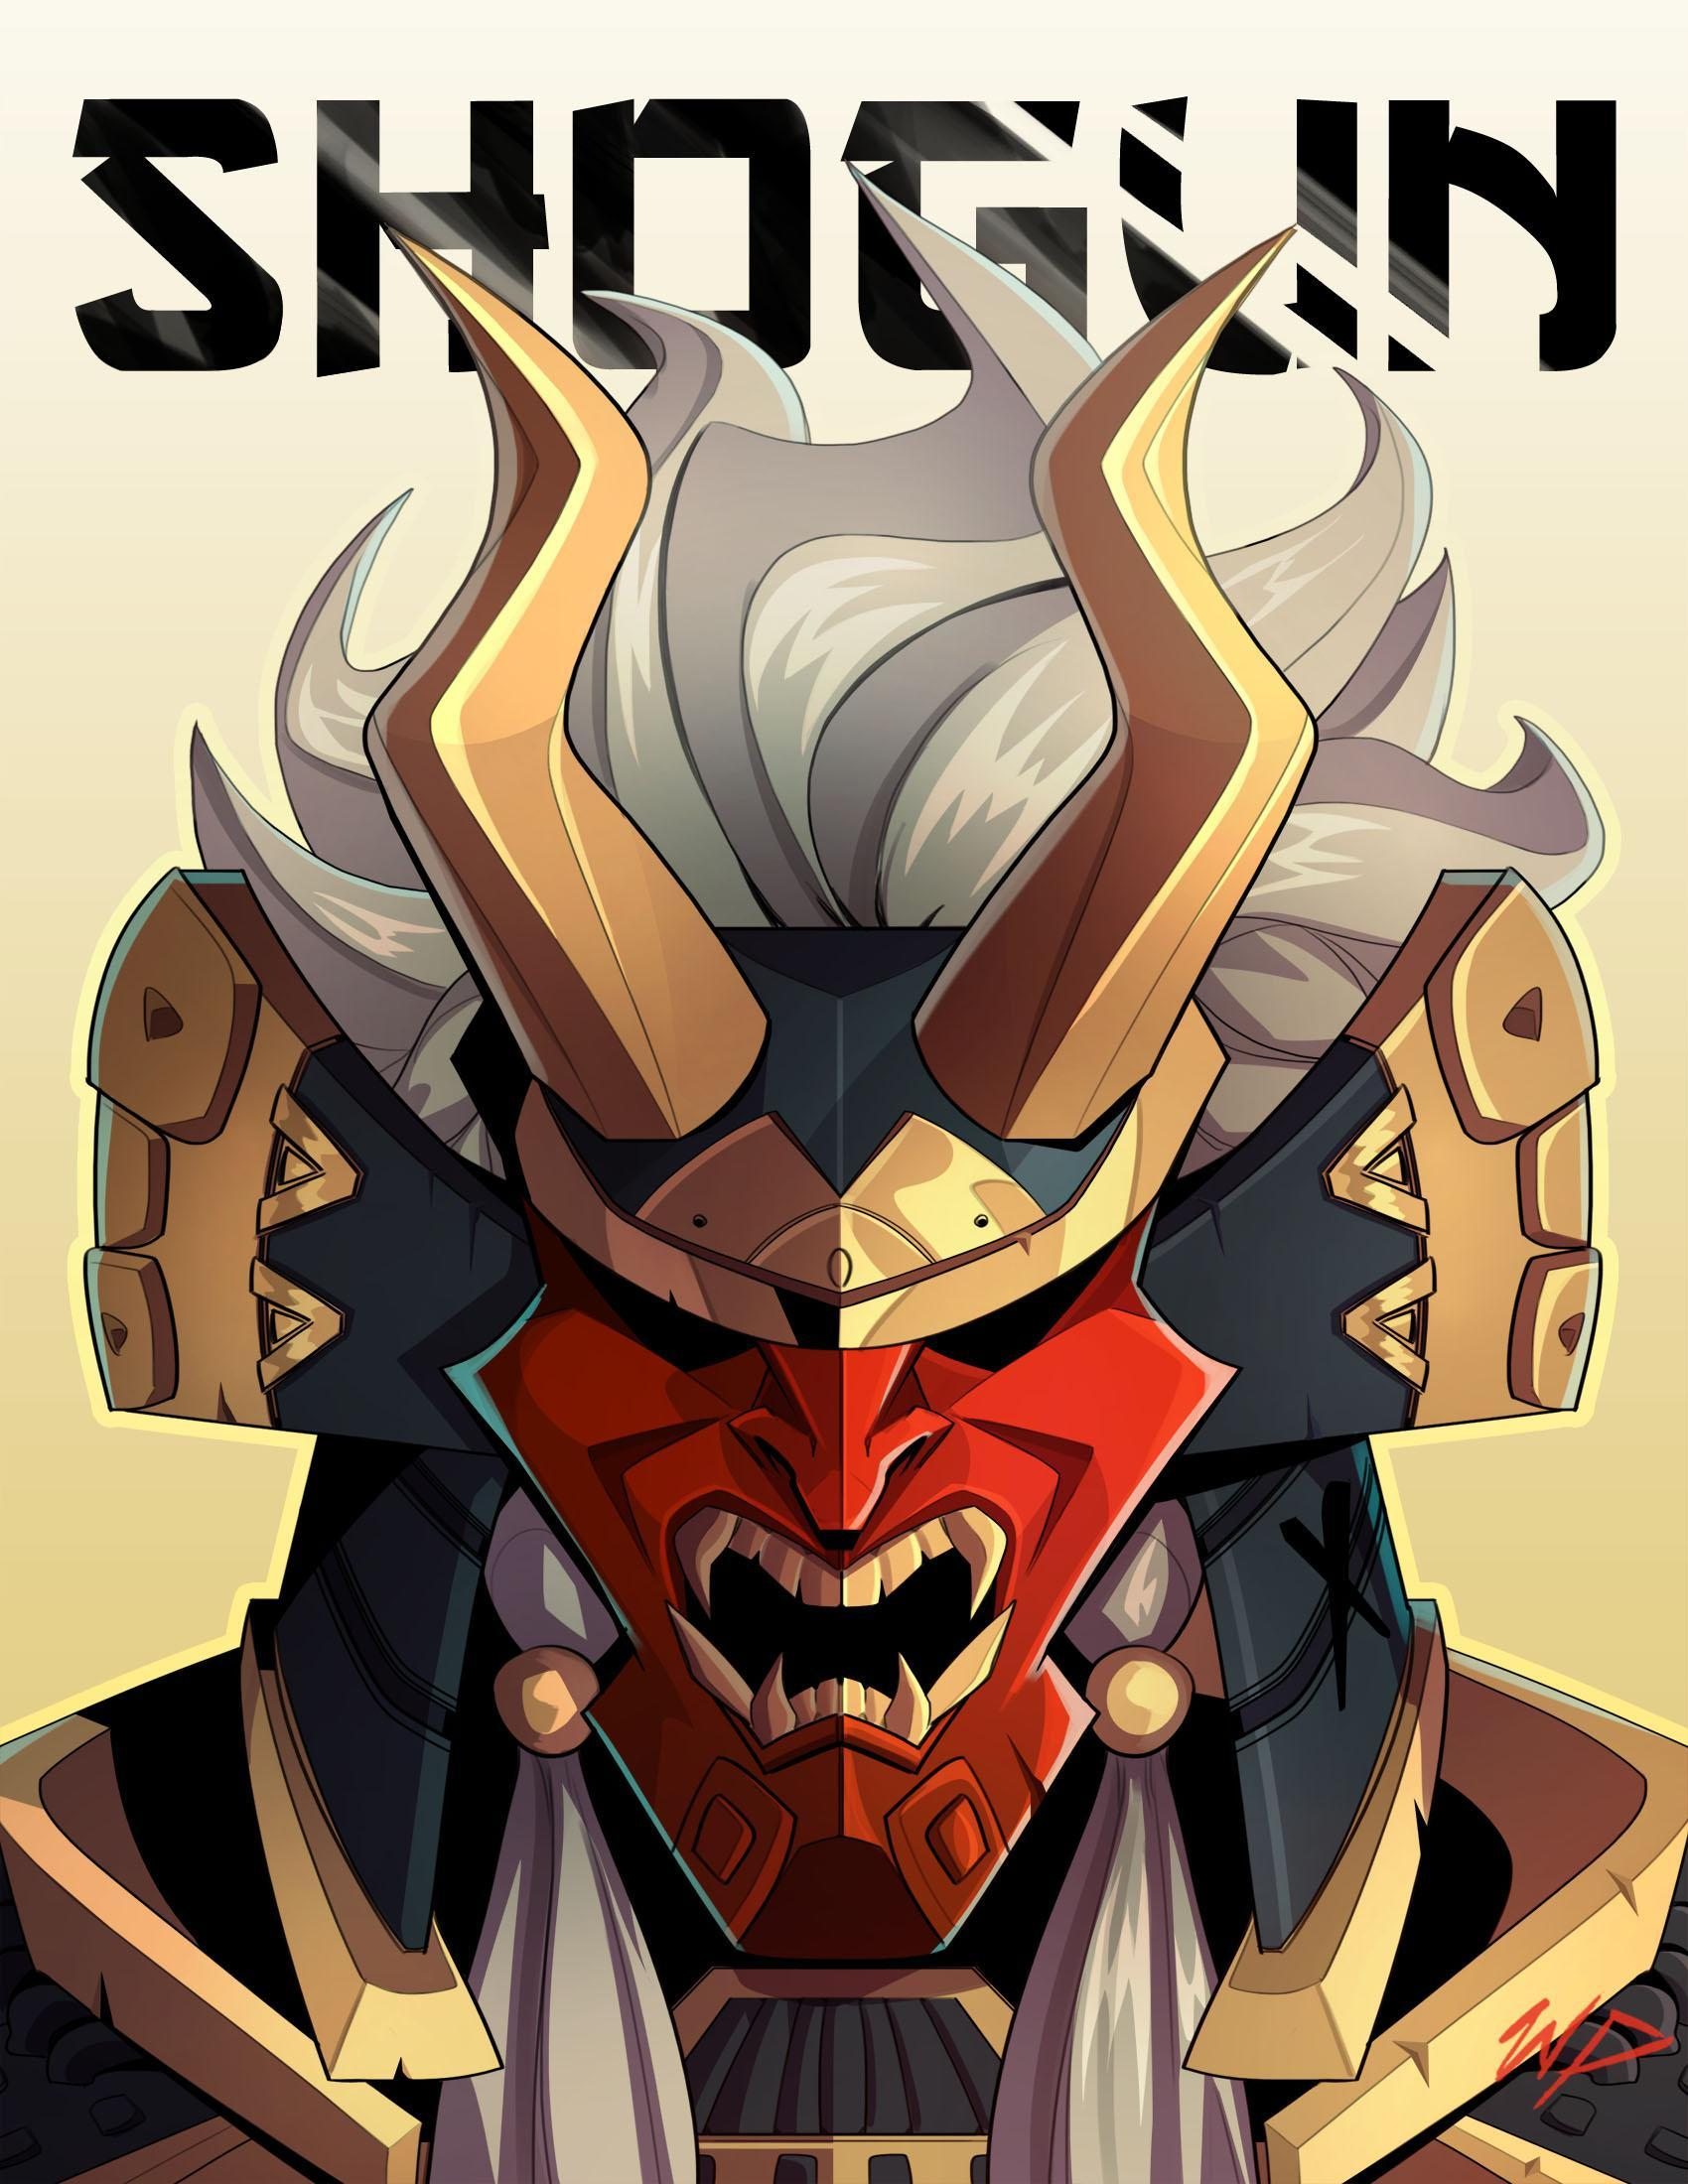 Shogun Fan art : FortNiteBR